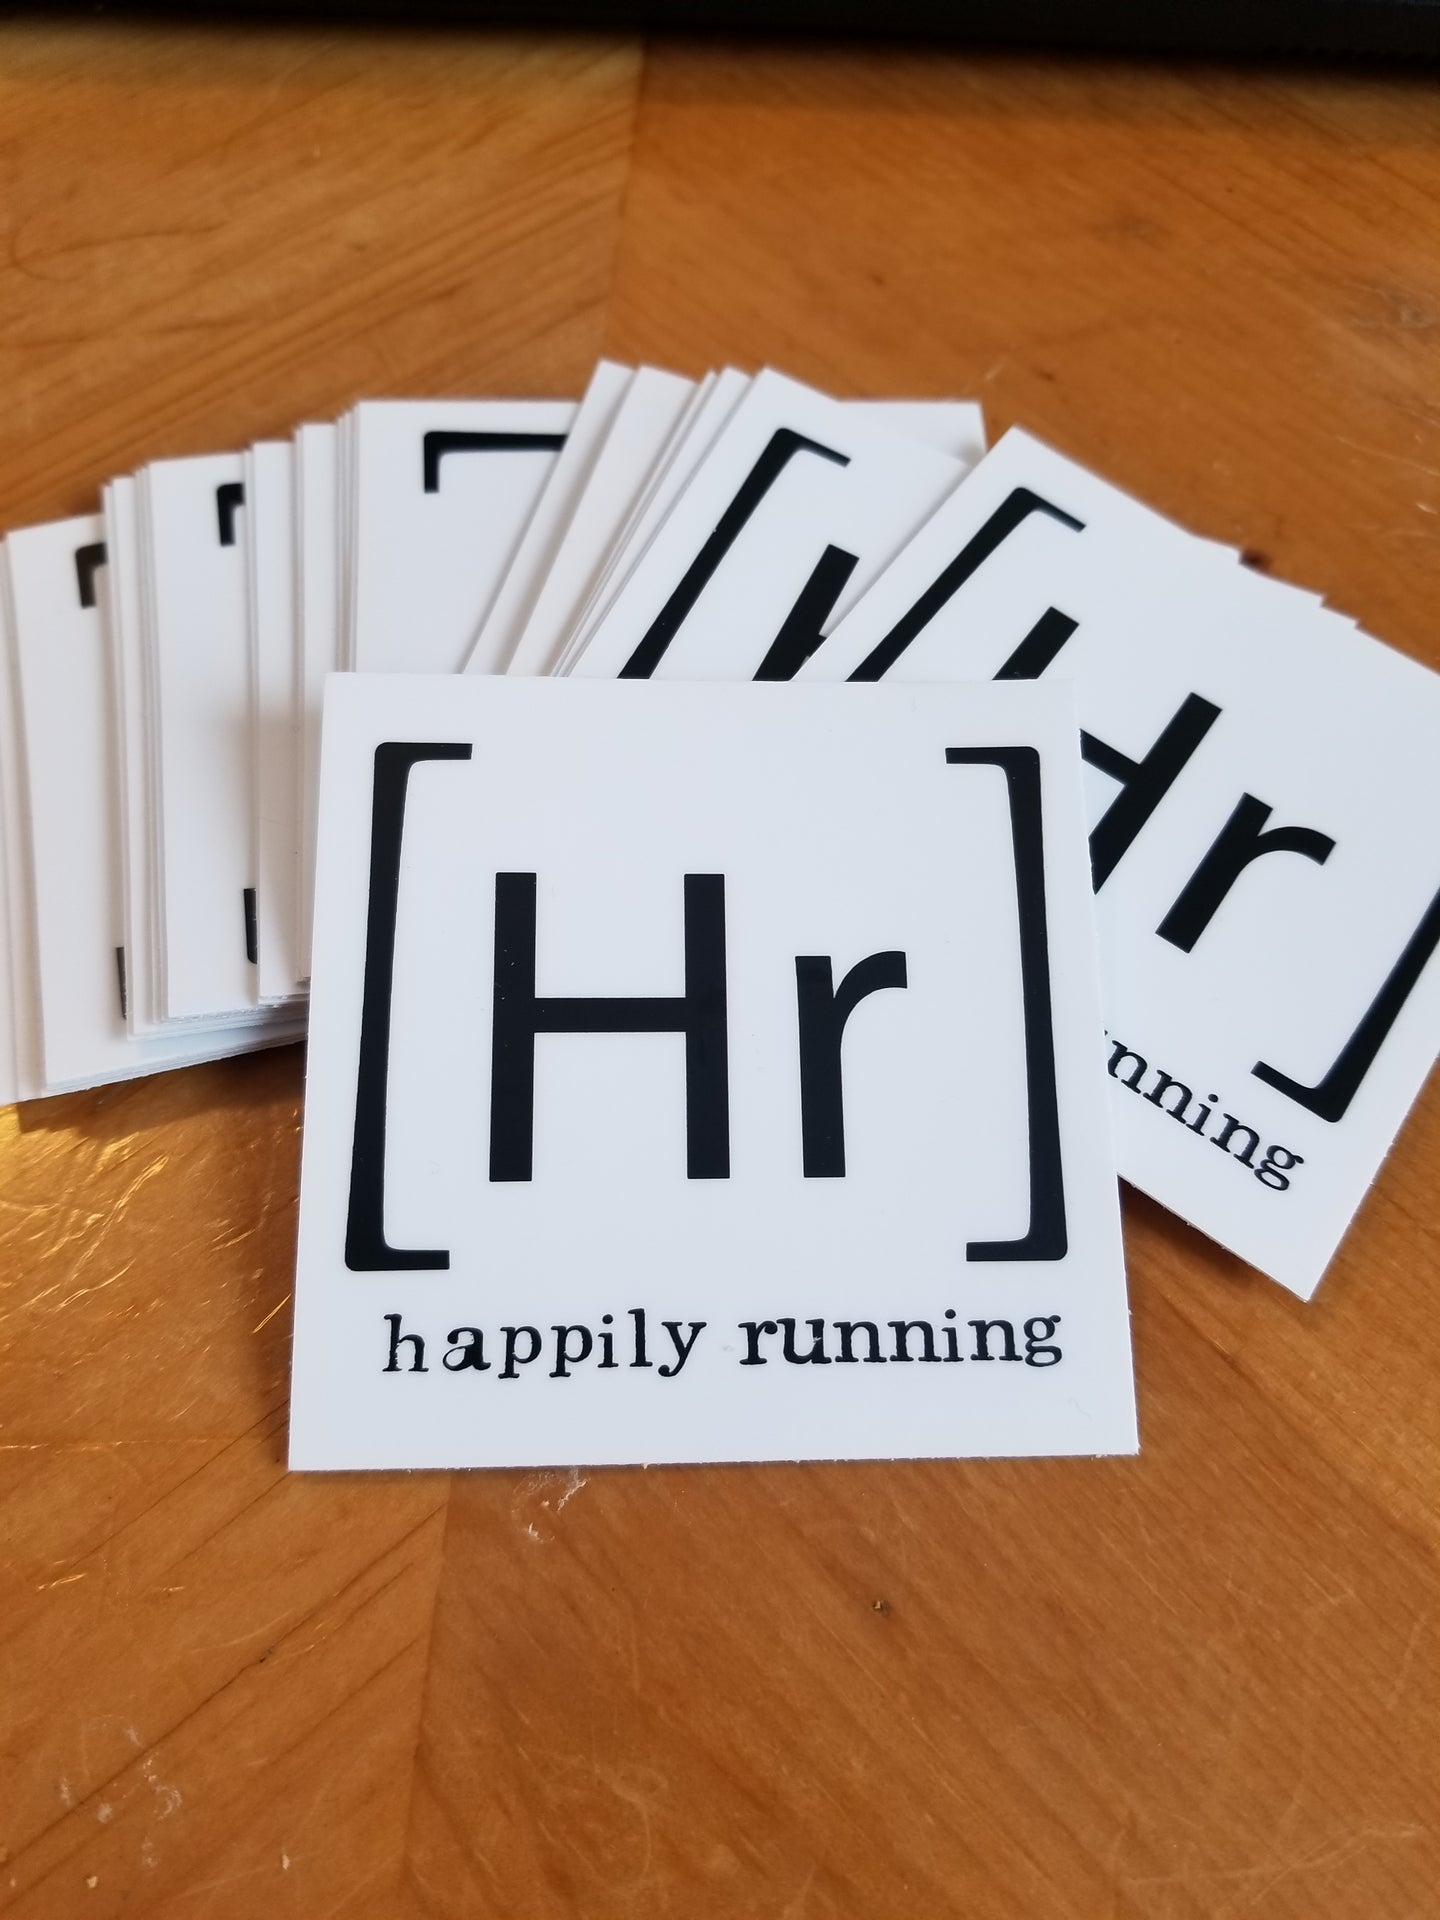 Happily Running logo sticker